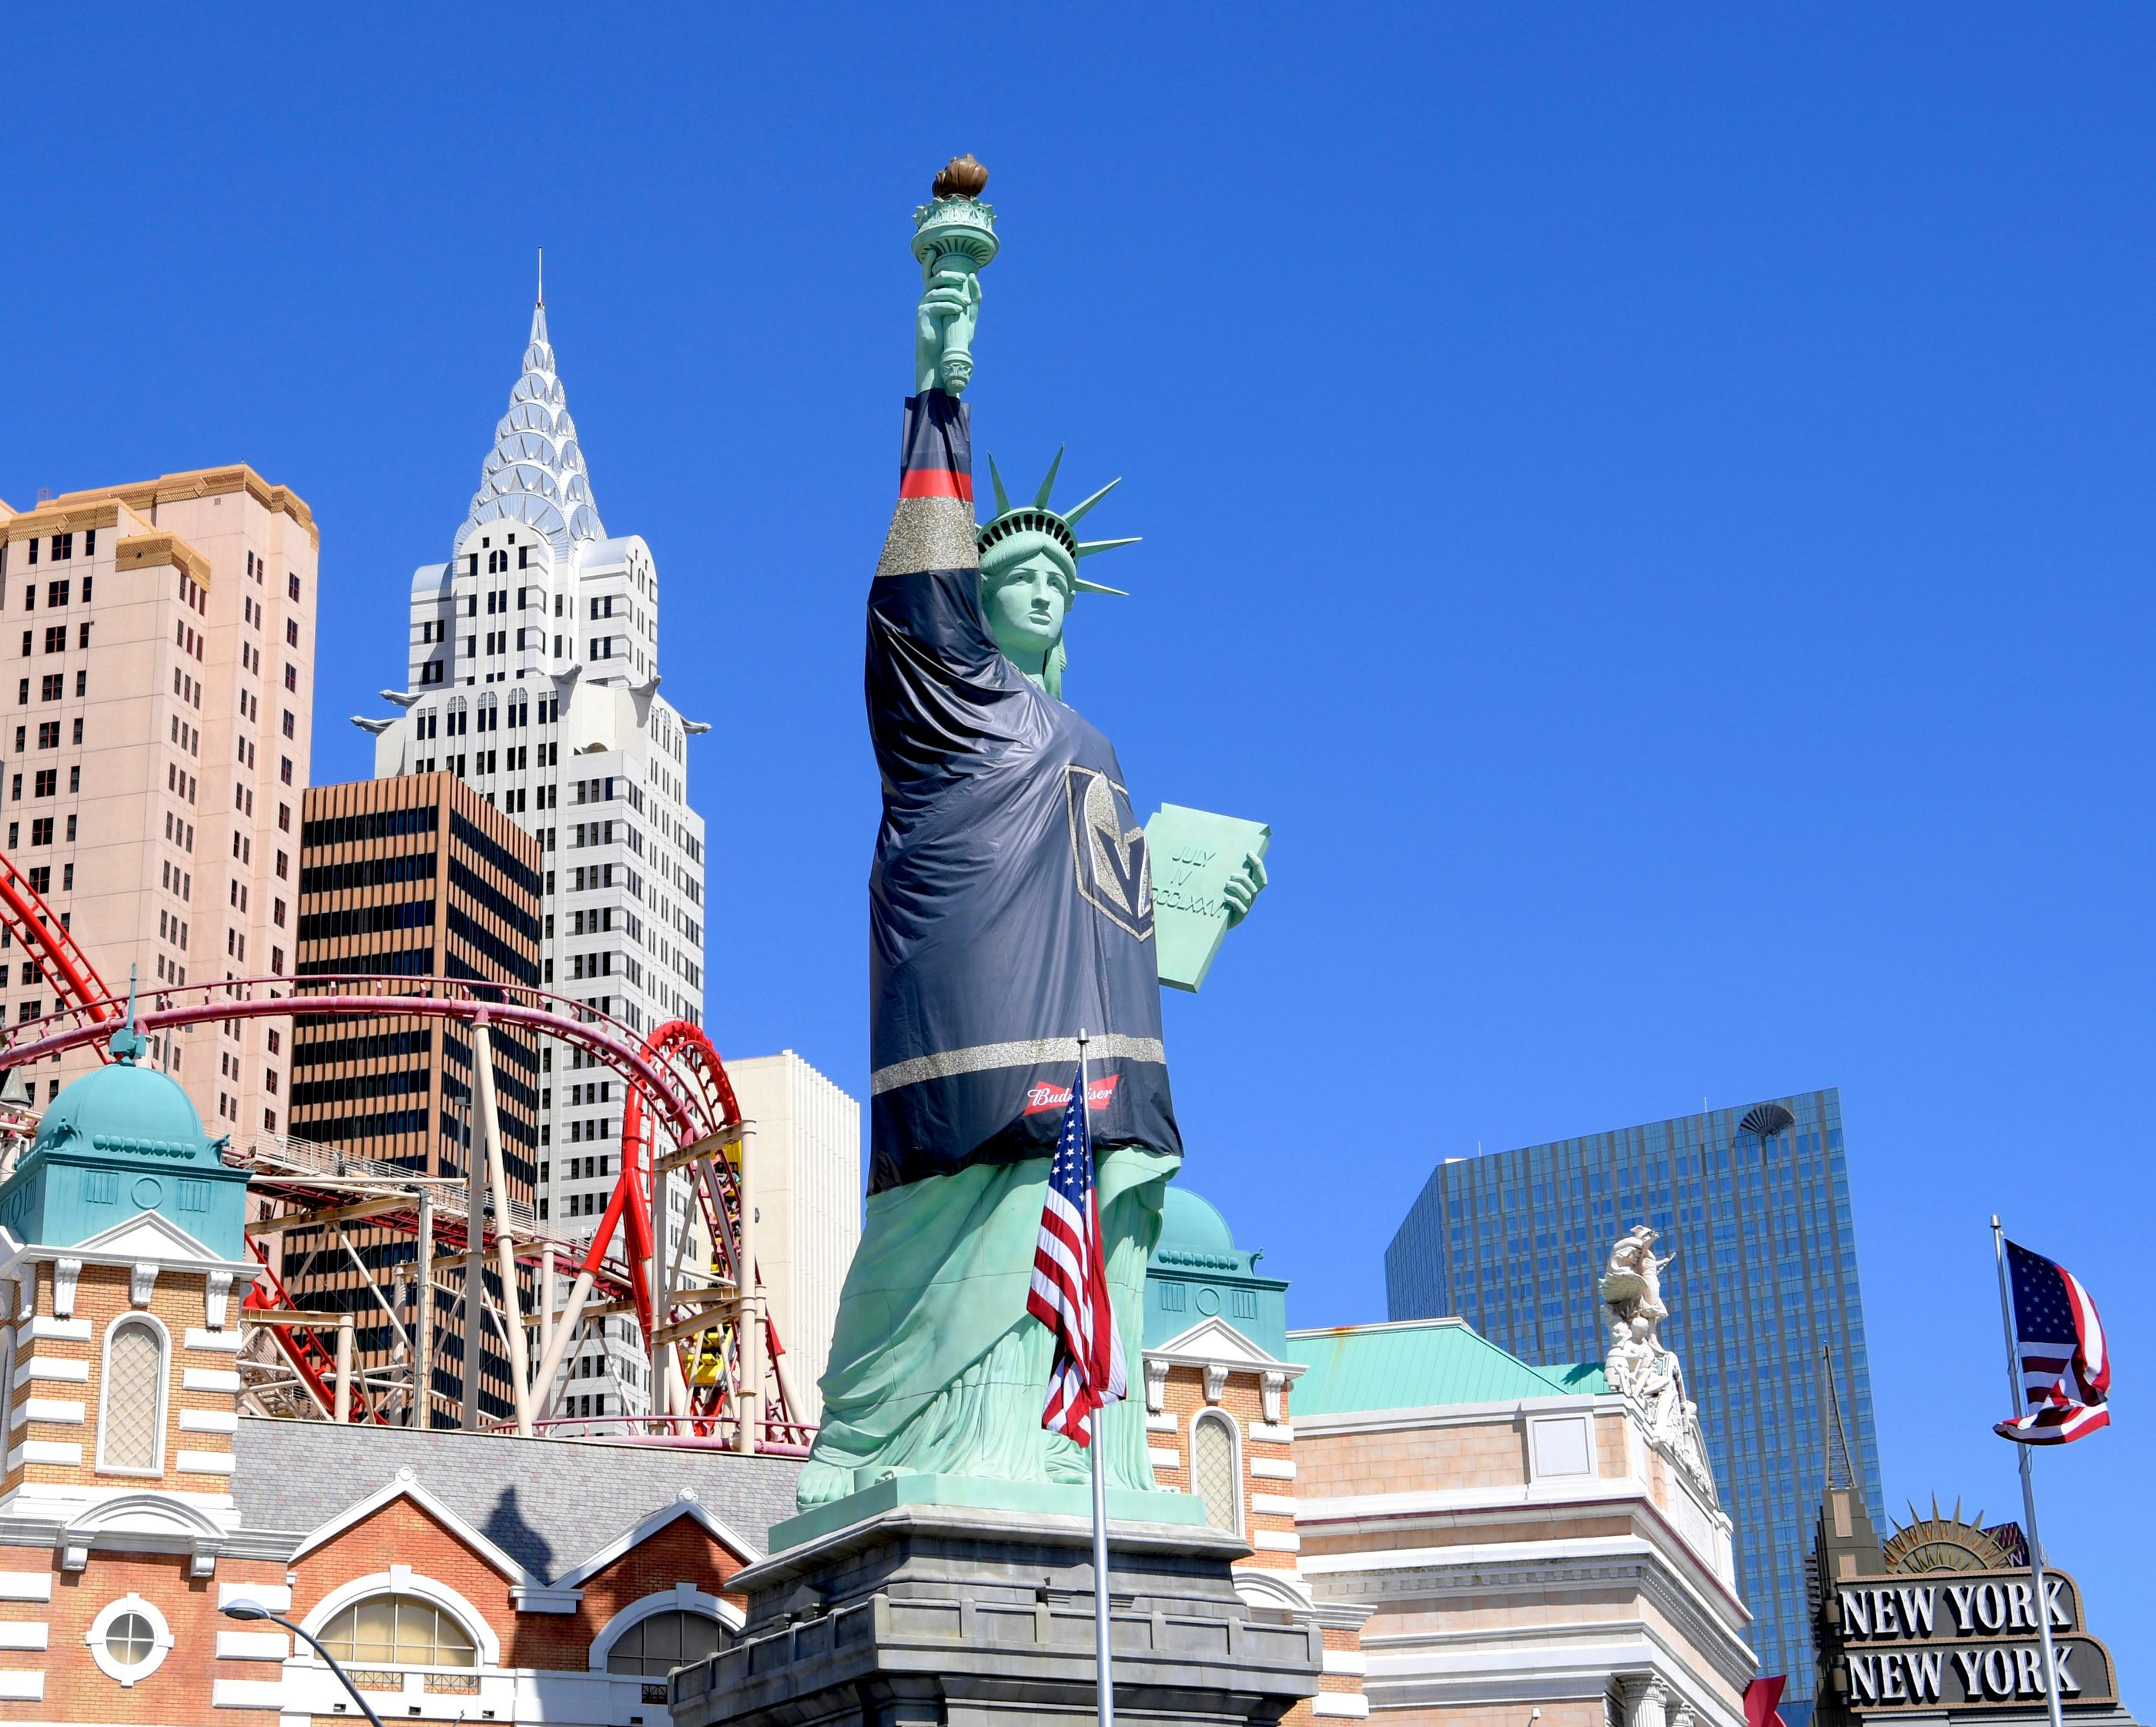 Statue Of Liberty At Nyny Ready For Vegas Golden Knights